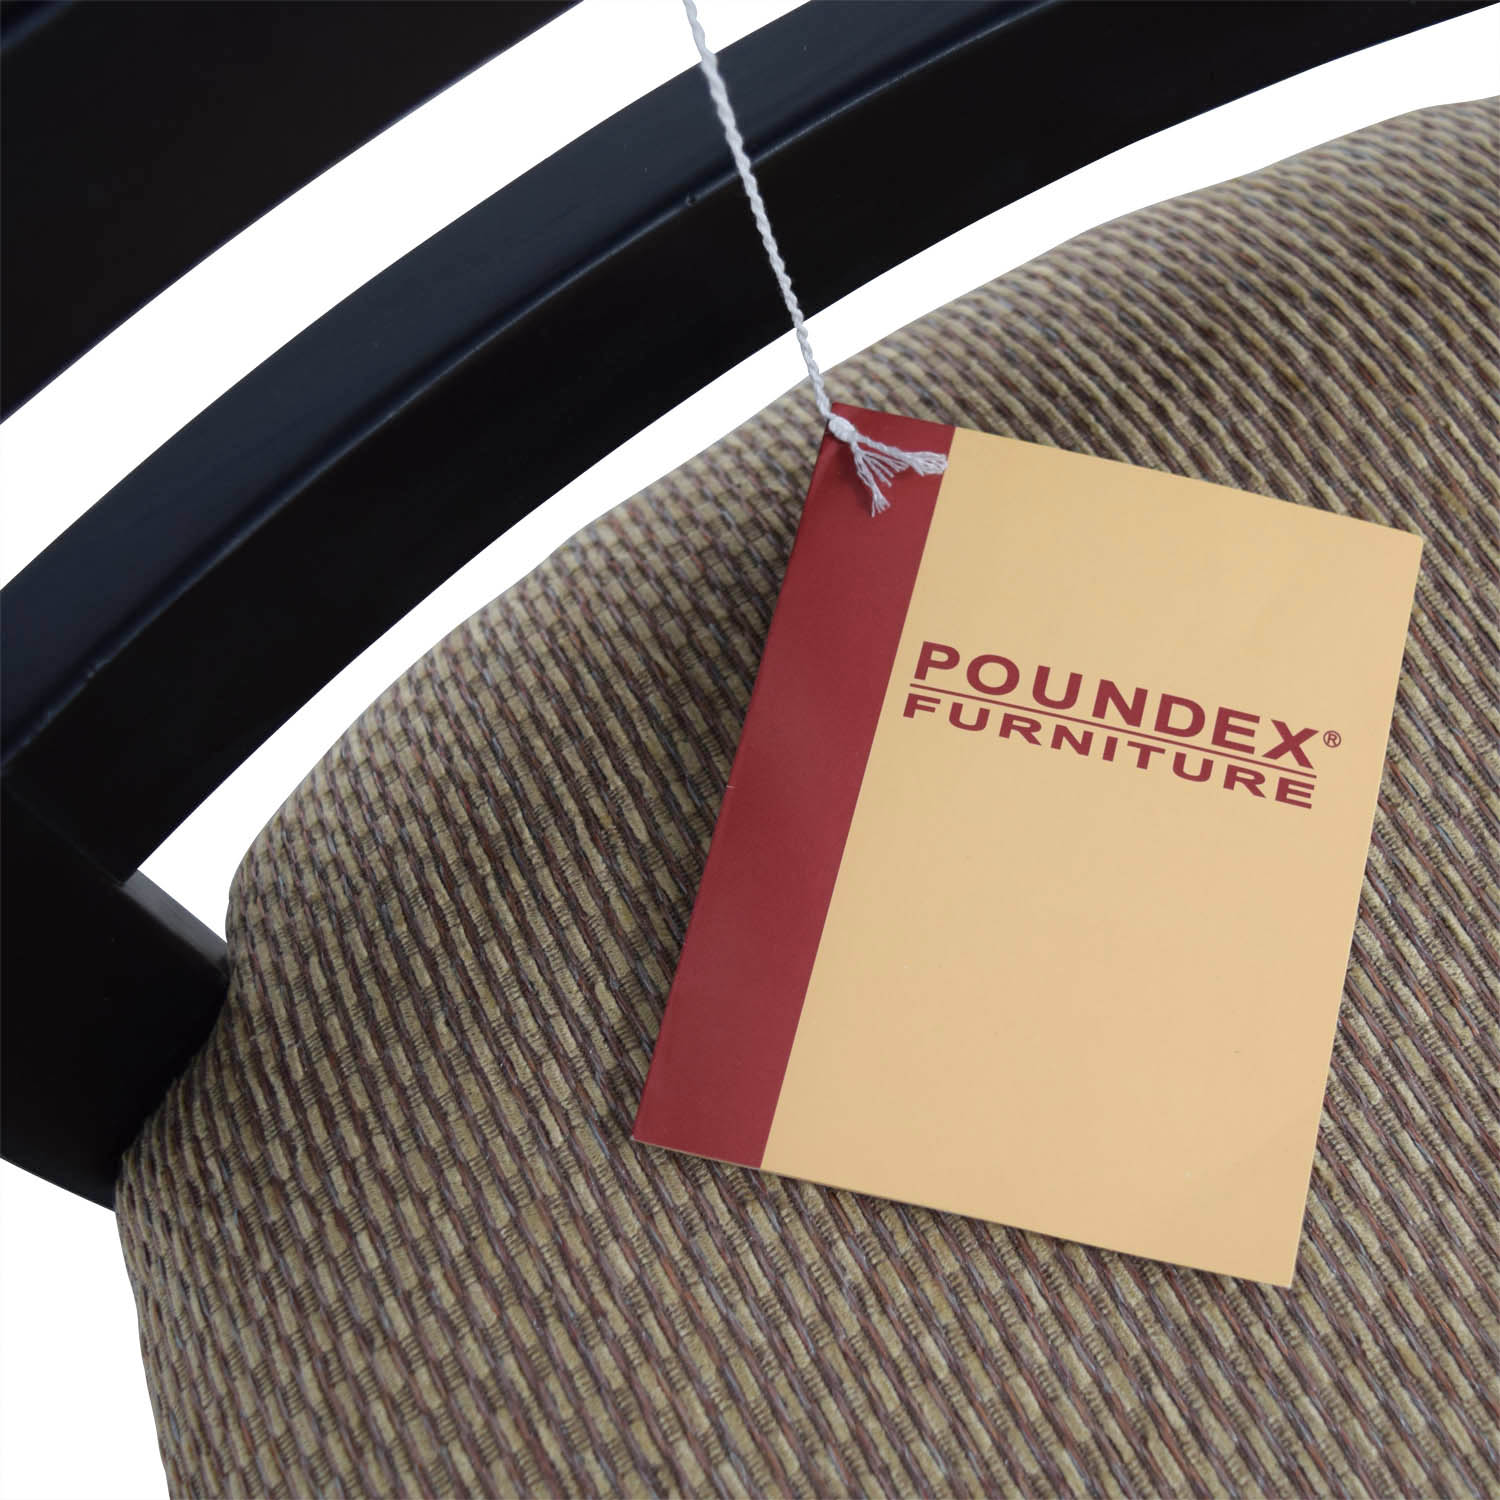 shop Poundex Furniture Poundex Furniture Black Chair with Padded Seat online